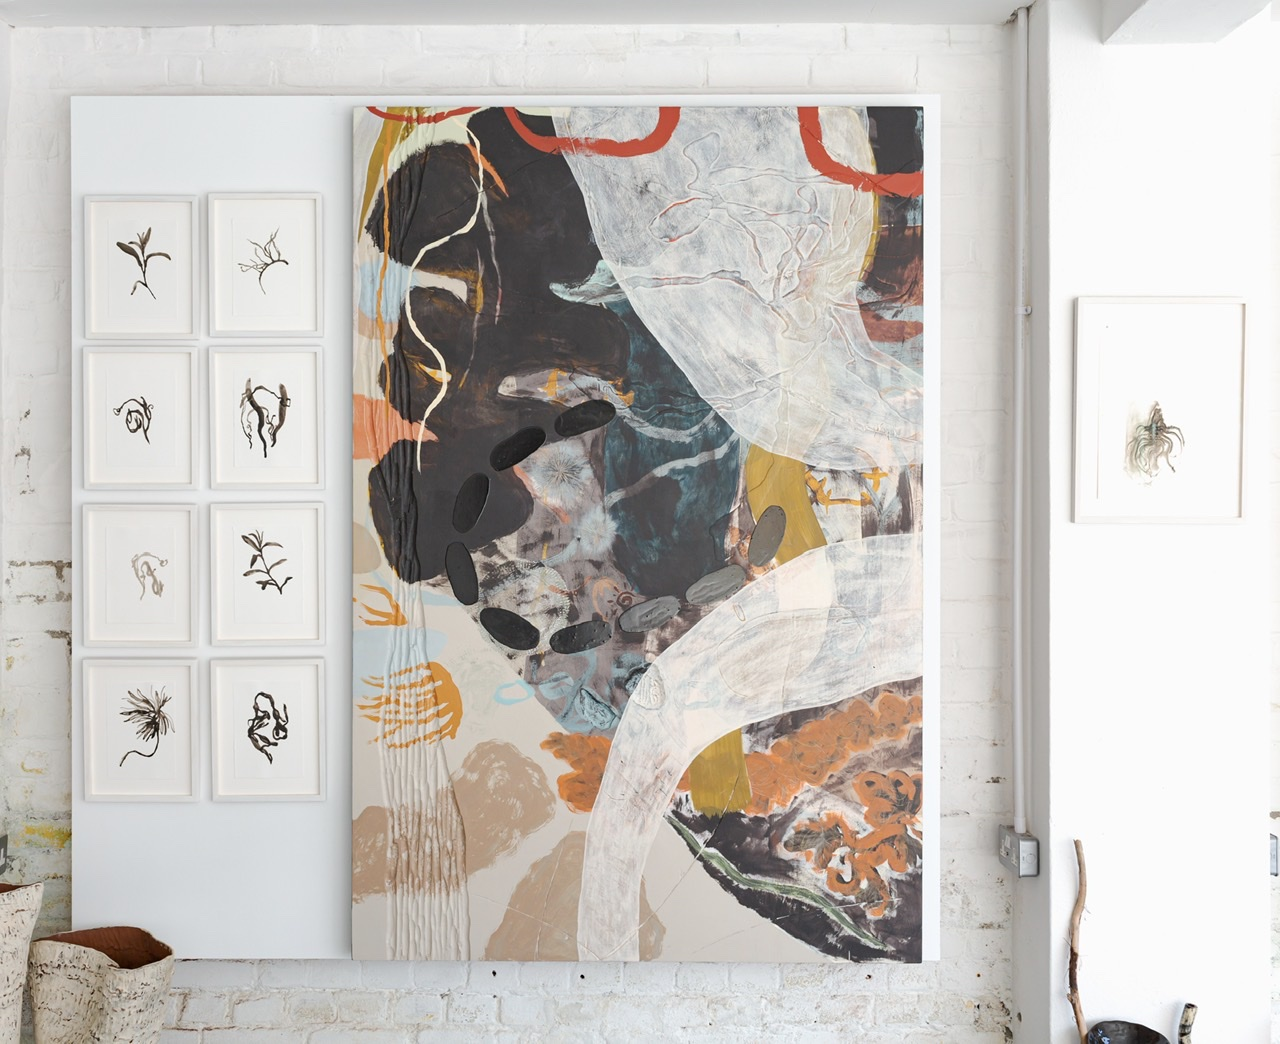 Large abstract painting and ink drawings by Kitty Hillier